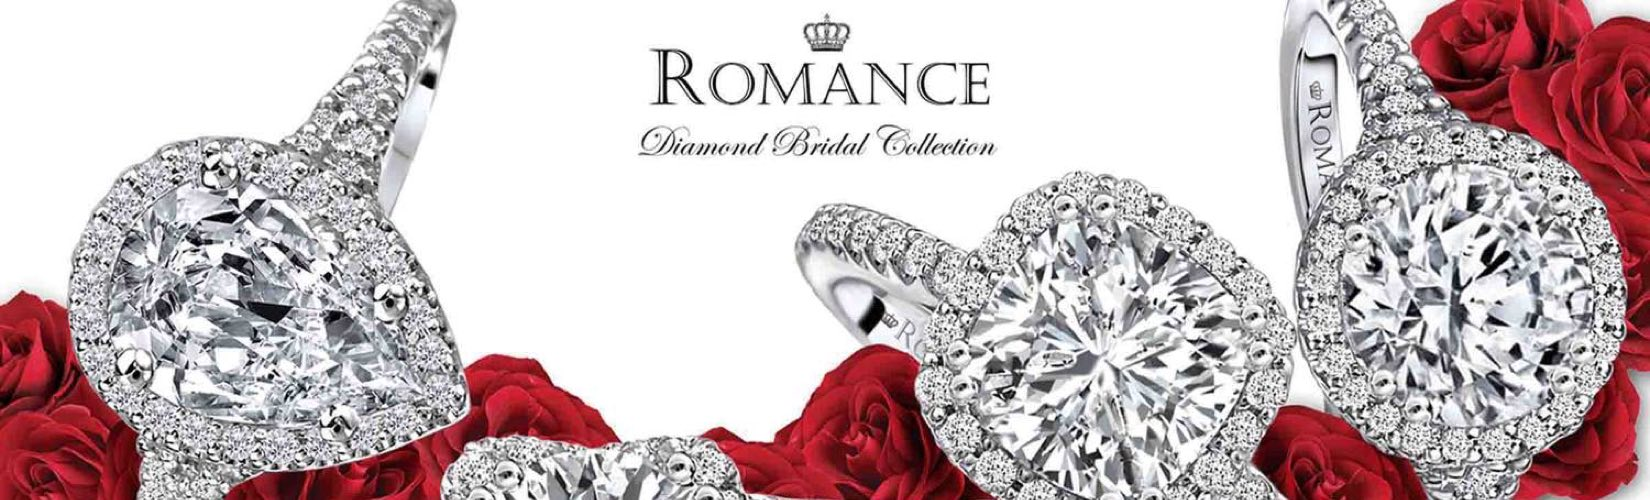 Romance Bridal Collection  Engagement Rings And Wedding Rings  Emerald  Lady Jewelry  Destin,